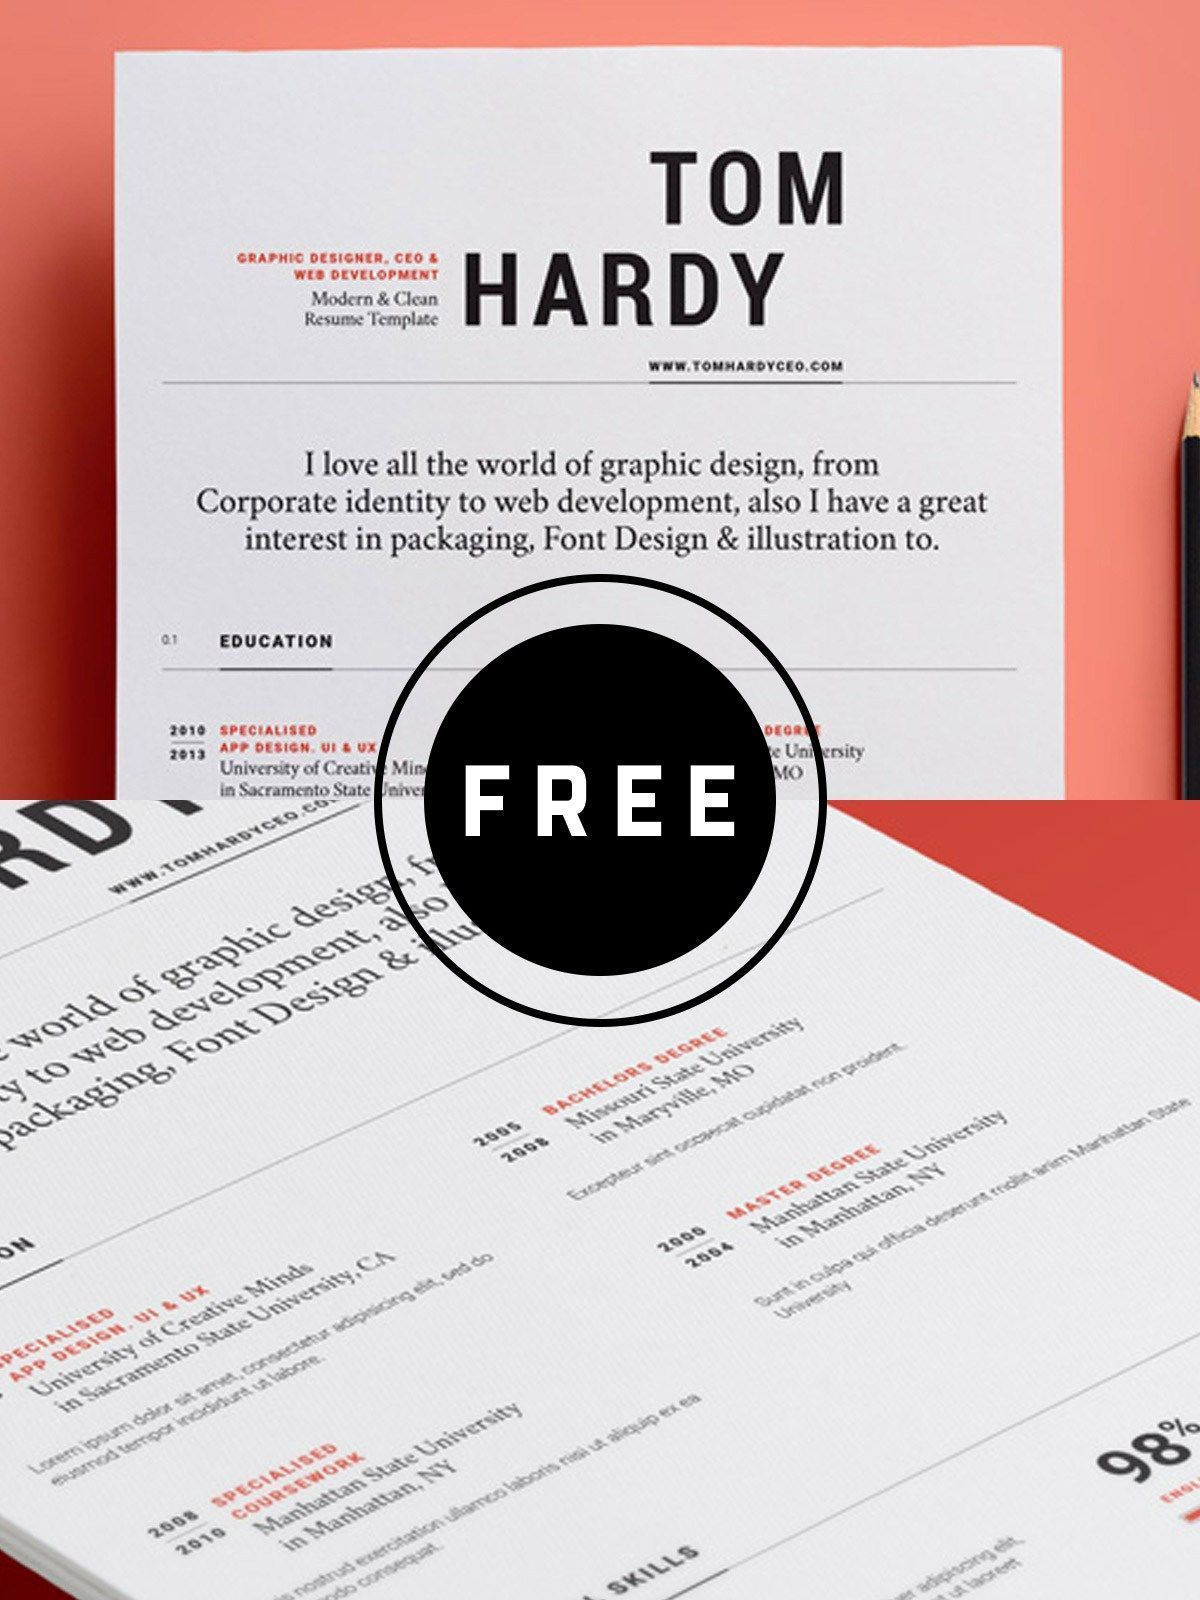 98 Awesome Free Resume Templates for 2019 in 2020 Resume